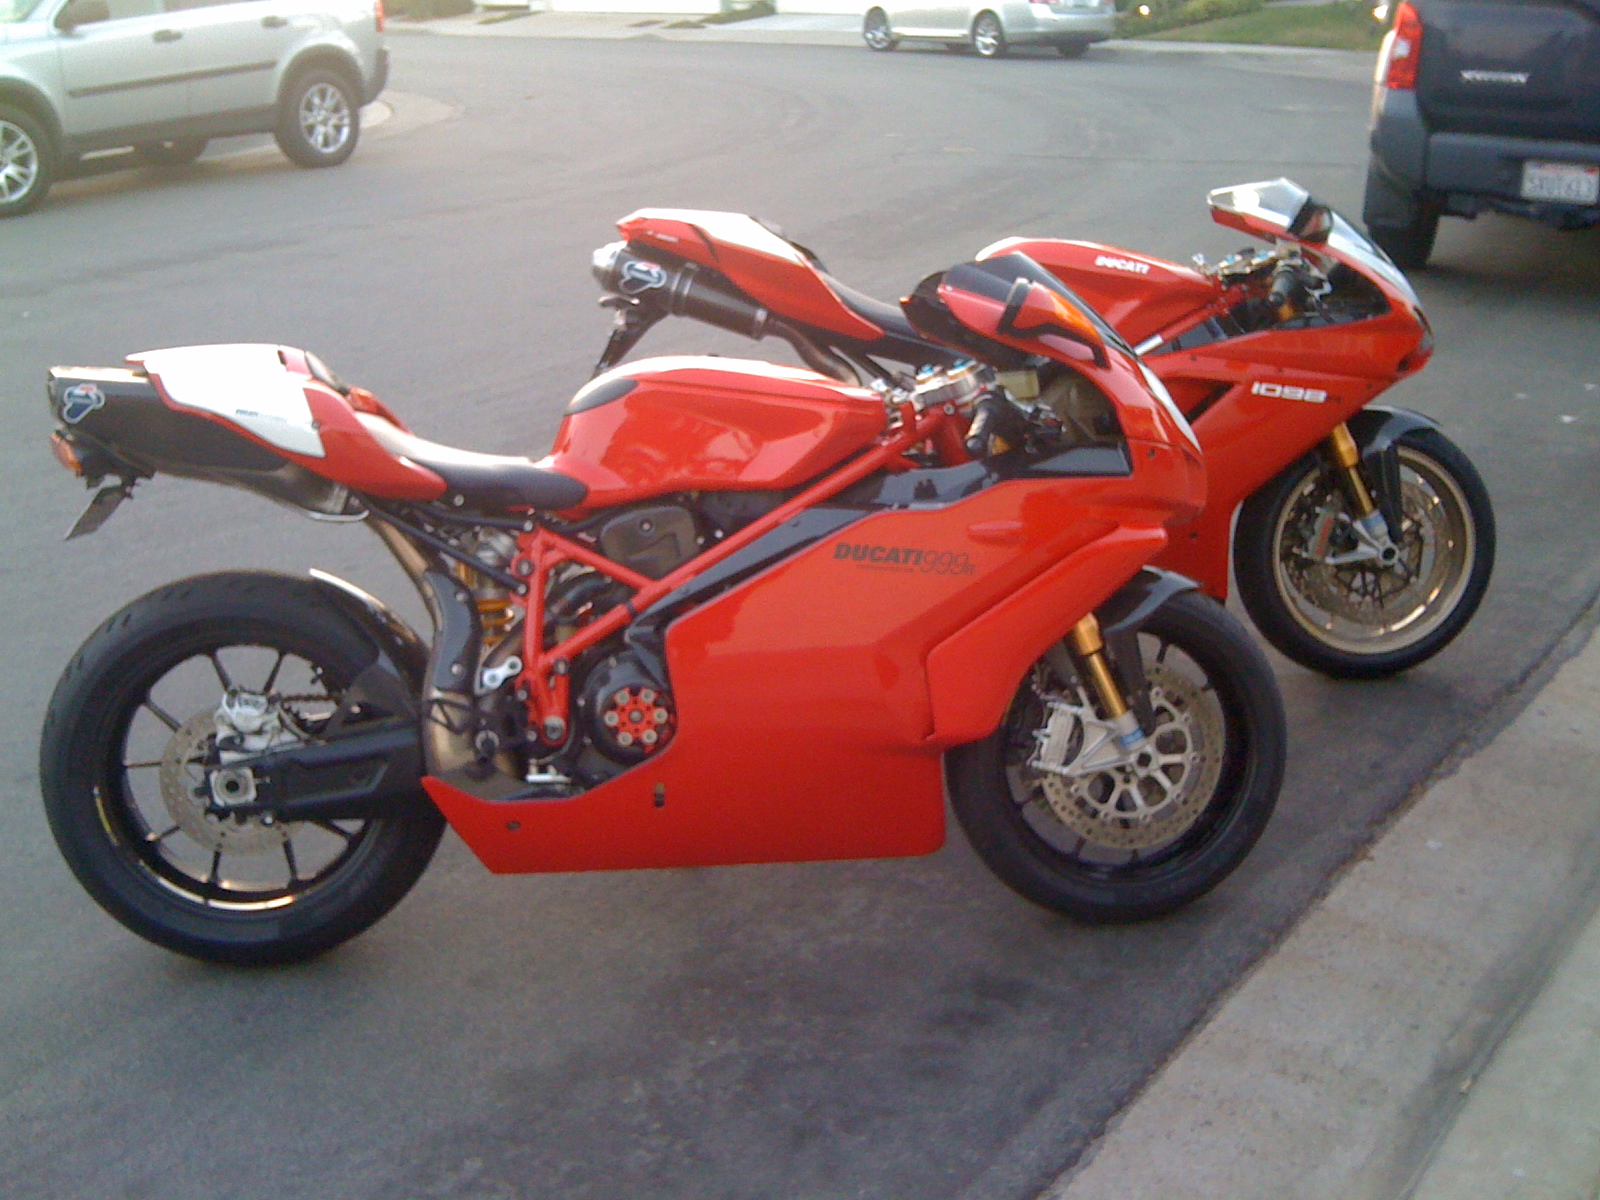 Ducati 999 R wallpapers #11638